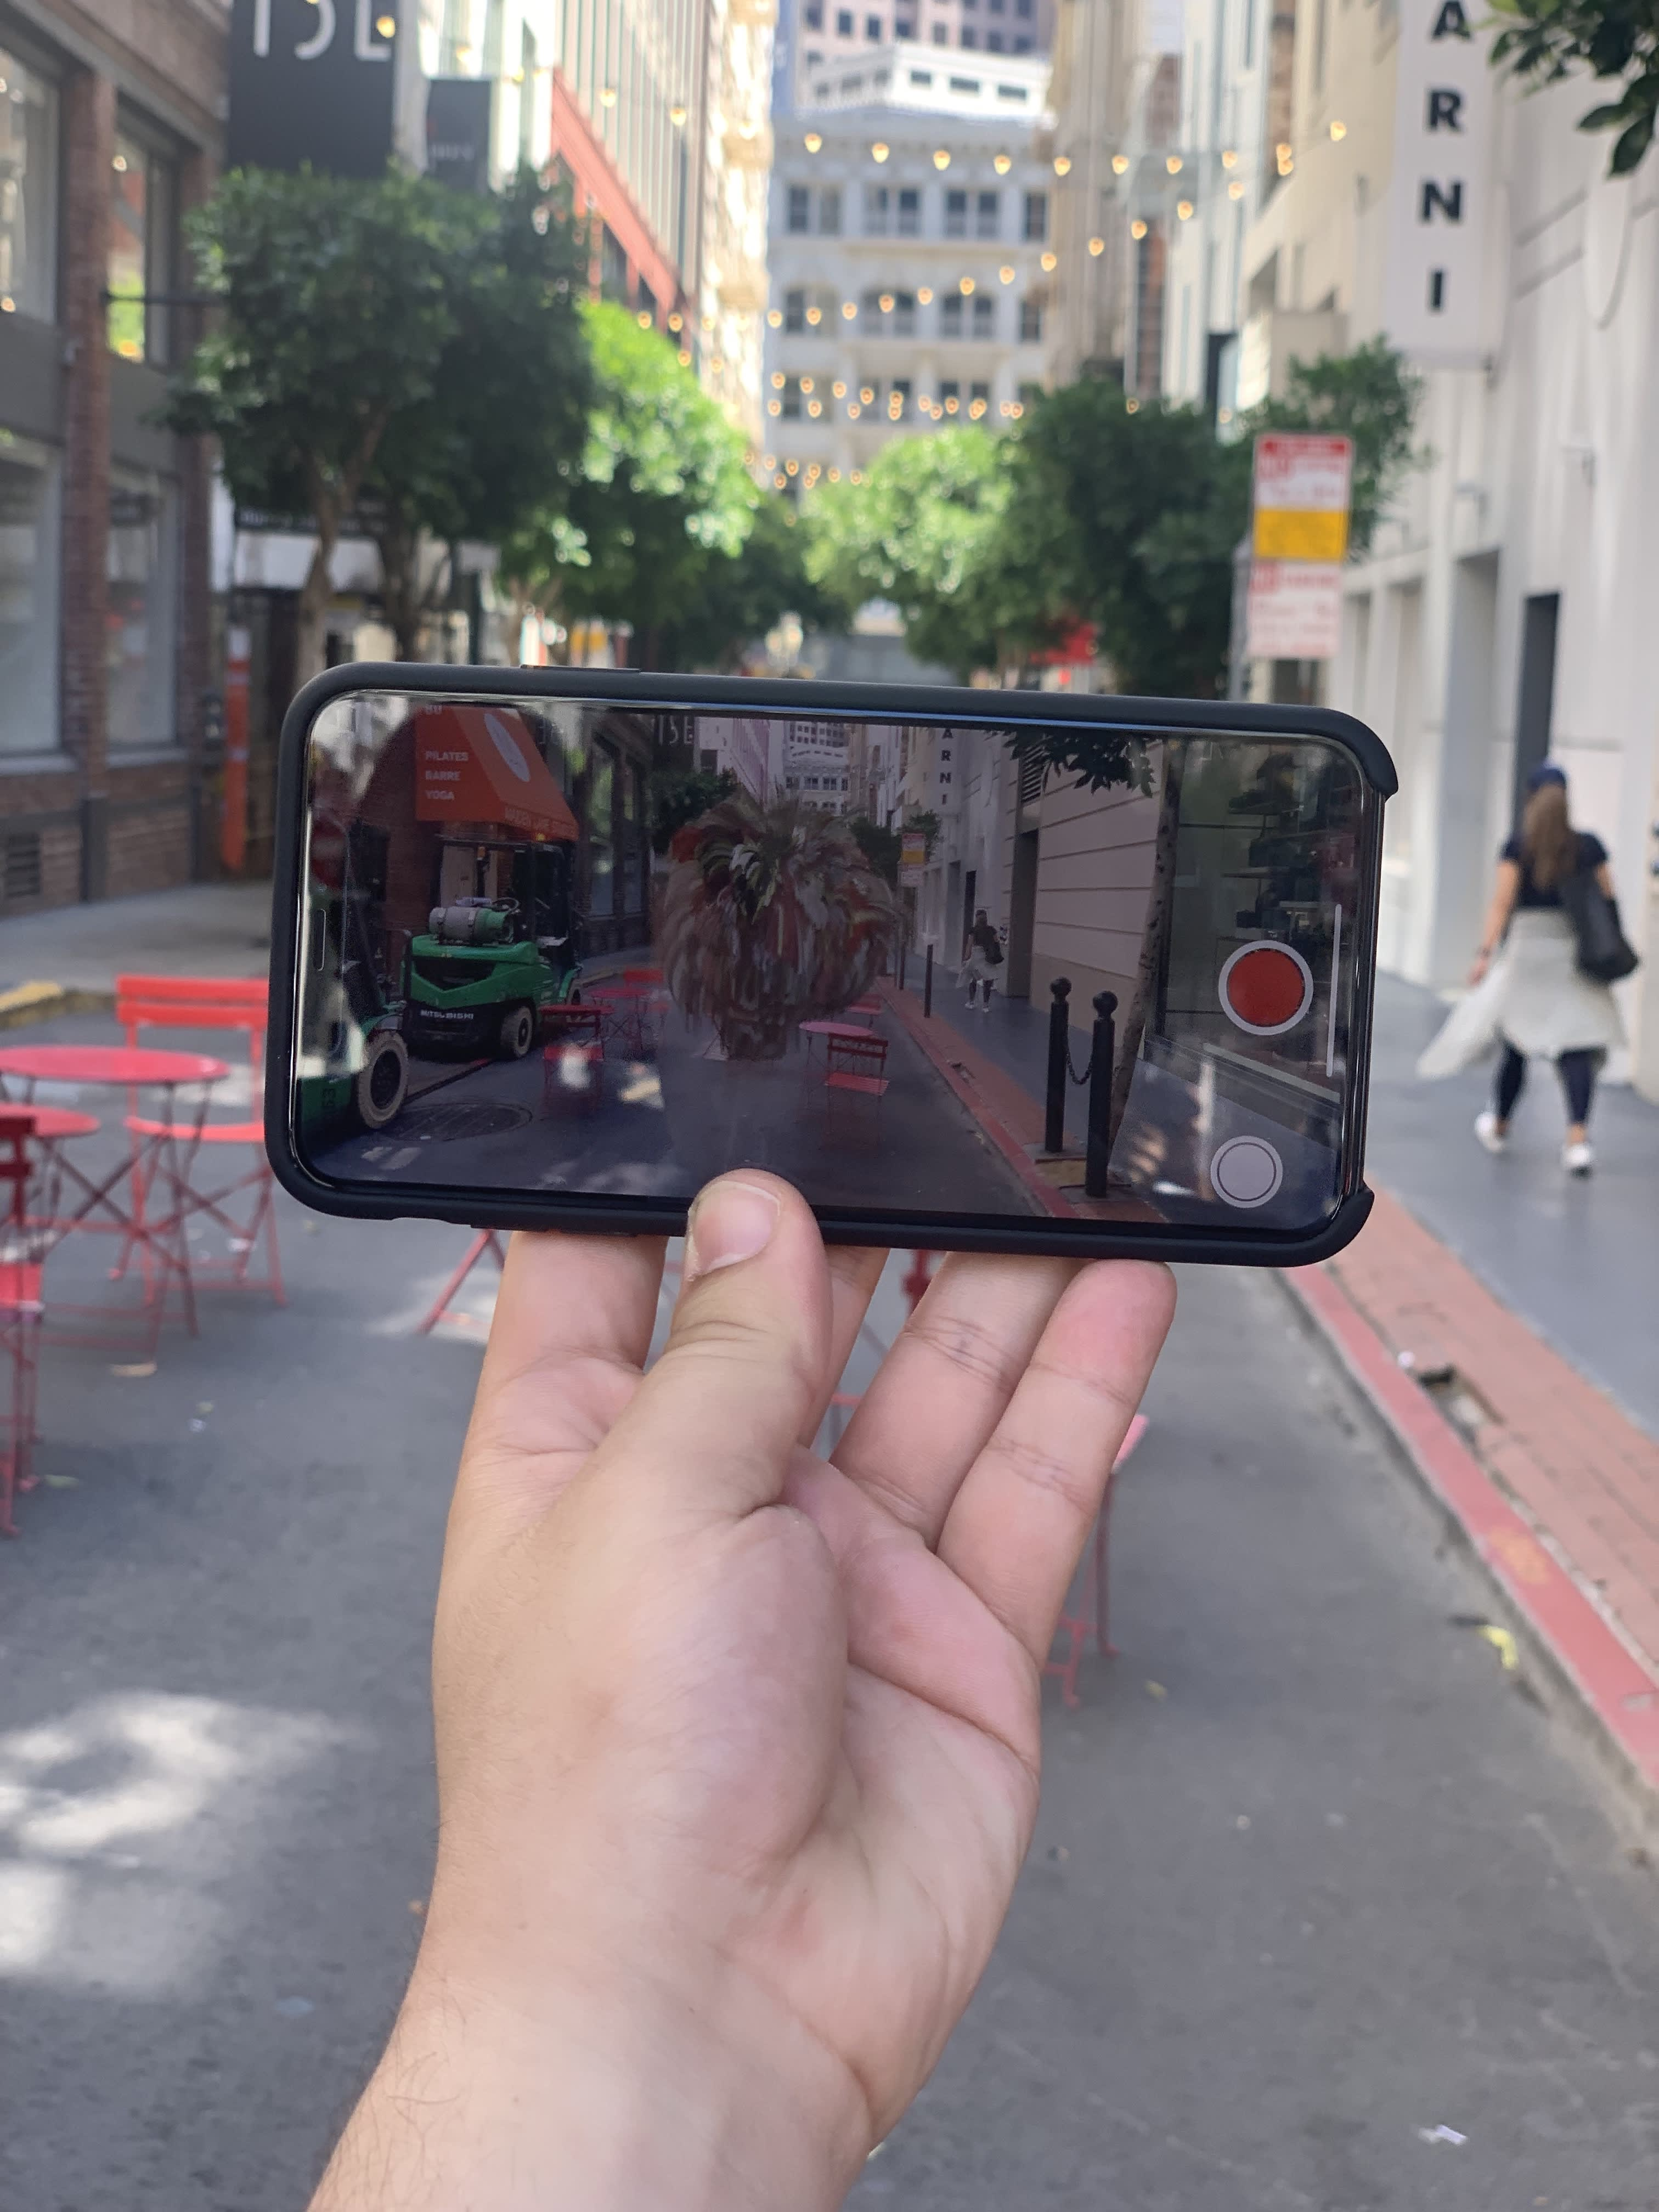 Apple took us on a surreal walk through San Francisco, looking at digital art on an iPhone